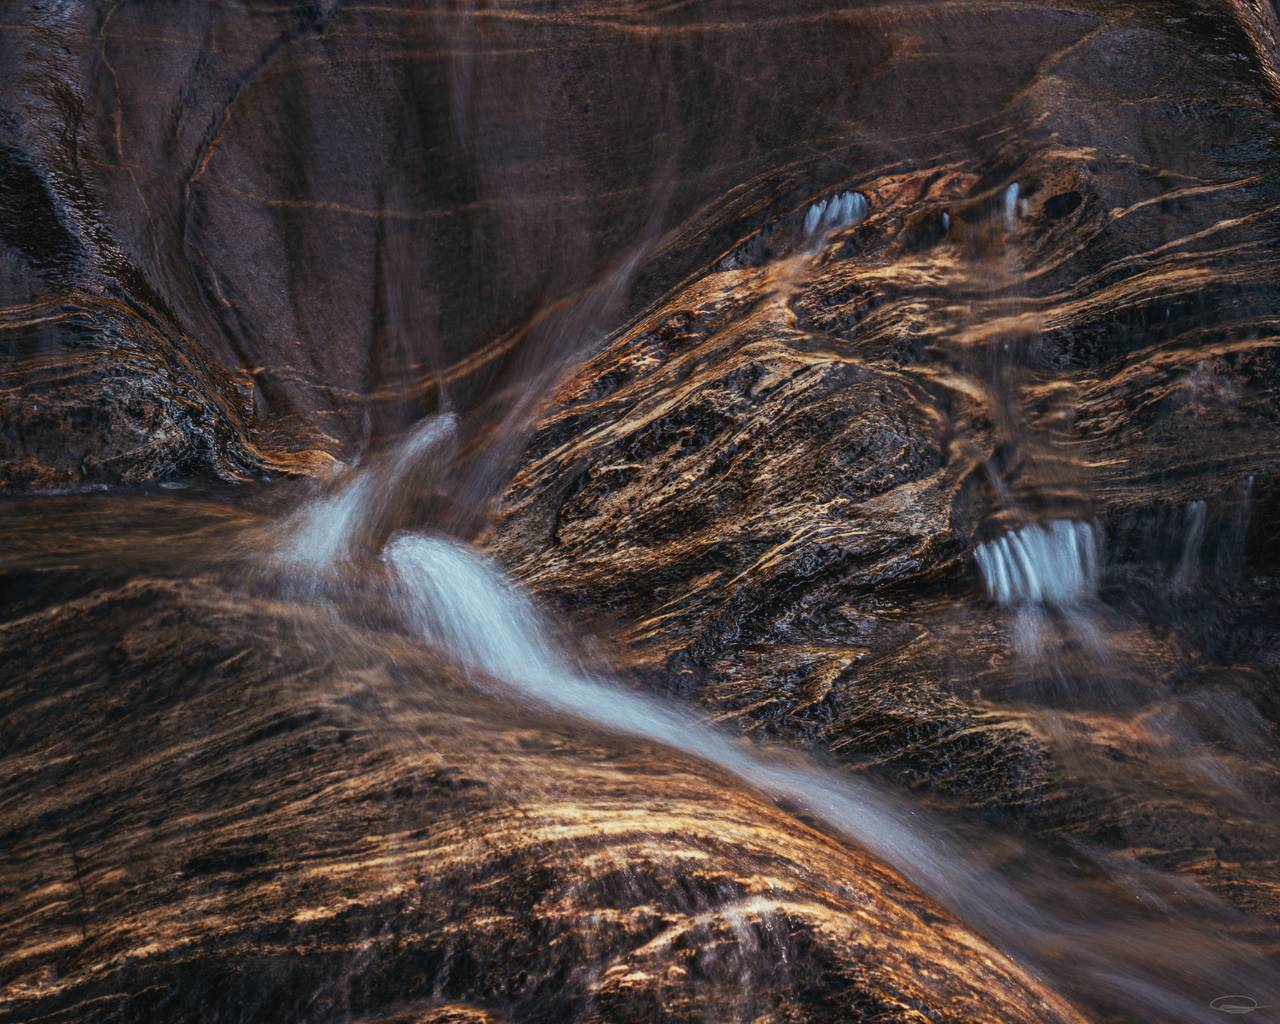 Abstract Photography | Intimate Landscape Photography - flowing water